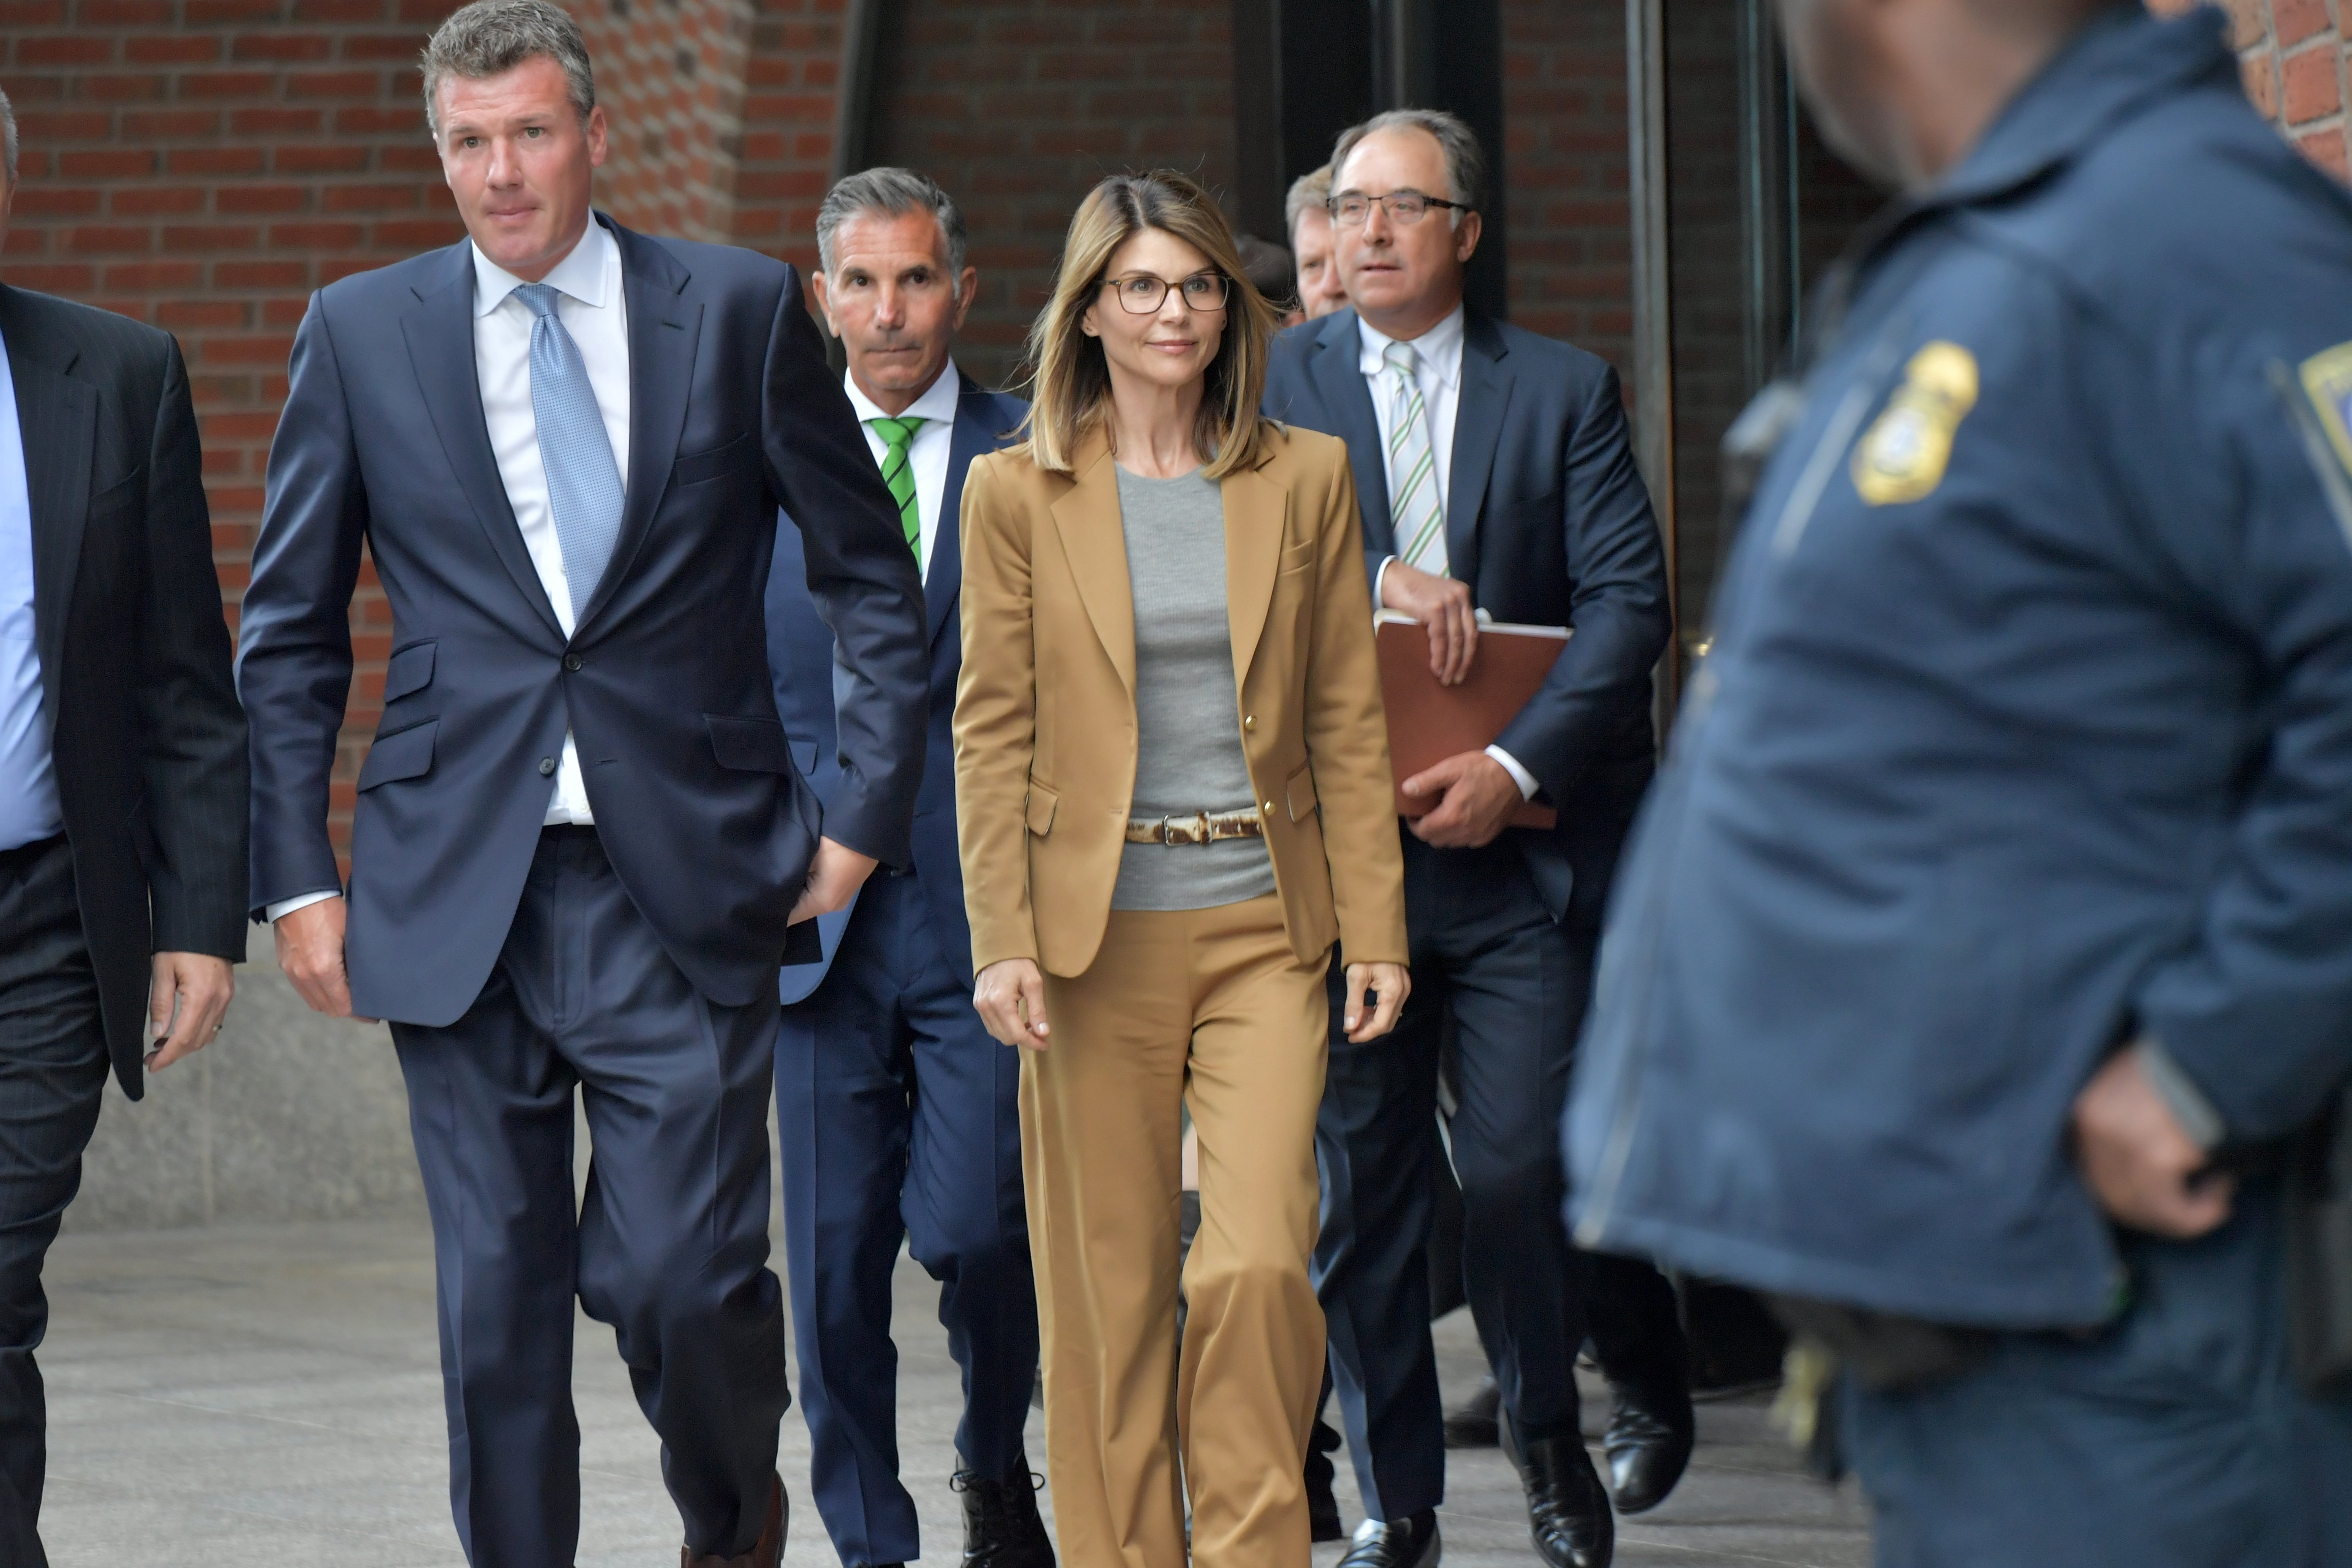 Lori Loughlin leaving the John Joseph Moakley U.S. Courthouse | Photo: Getty Images